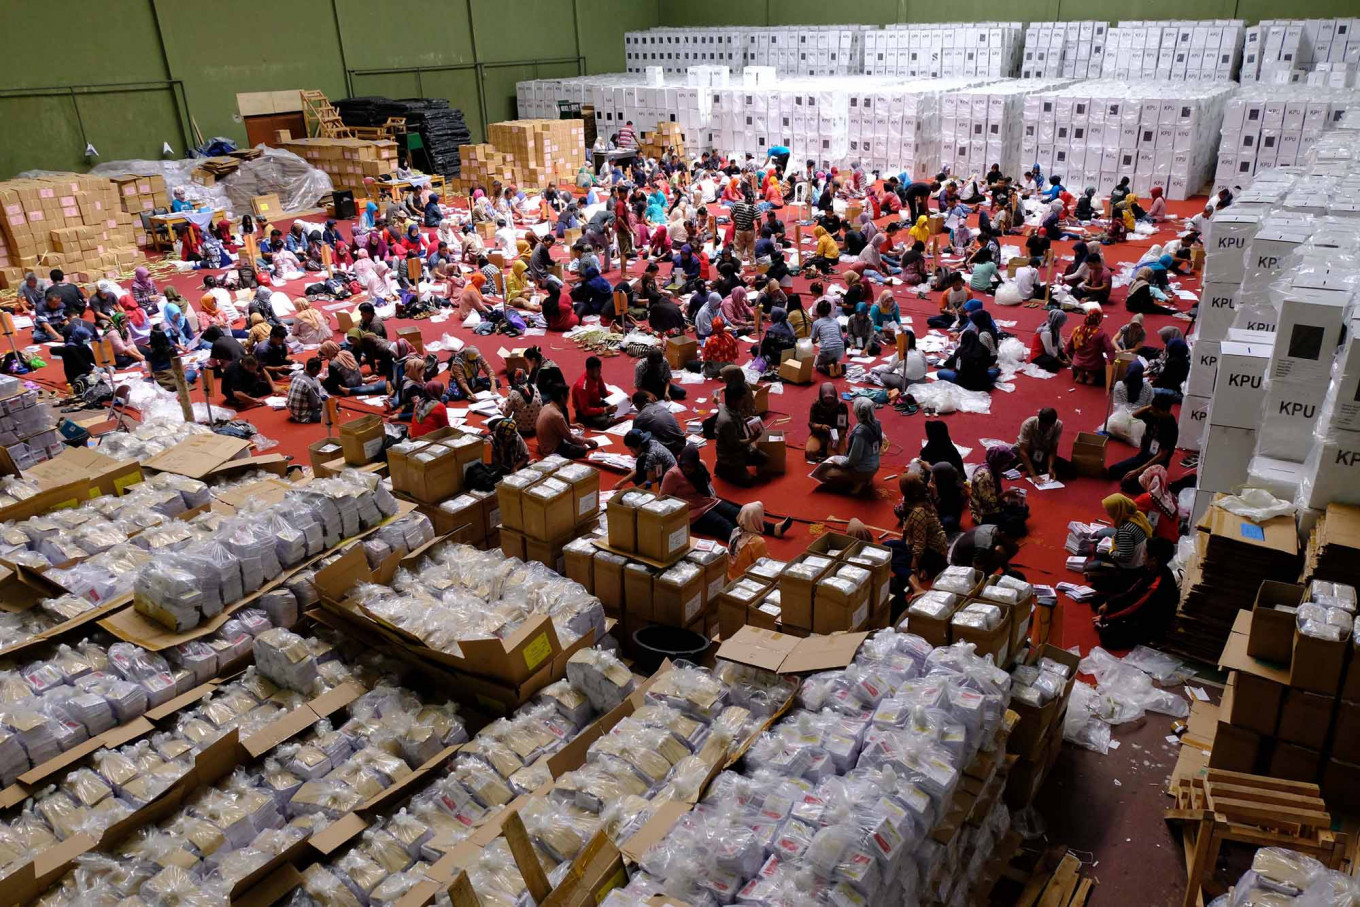 Temanggung General Elections Committee (KPUD) workers fold ballots for the 2019 elections at the Bambu Runcing sports hall in Temanggung, Central Java, on April 1. As many as 350 residents were employed to prepare the materials.